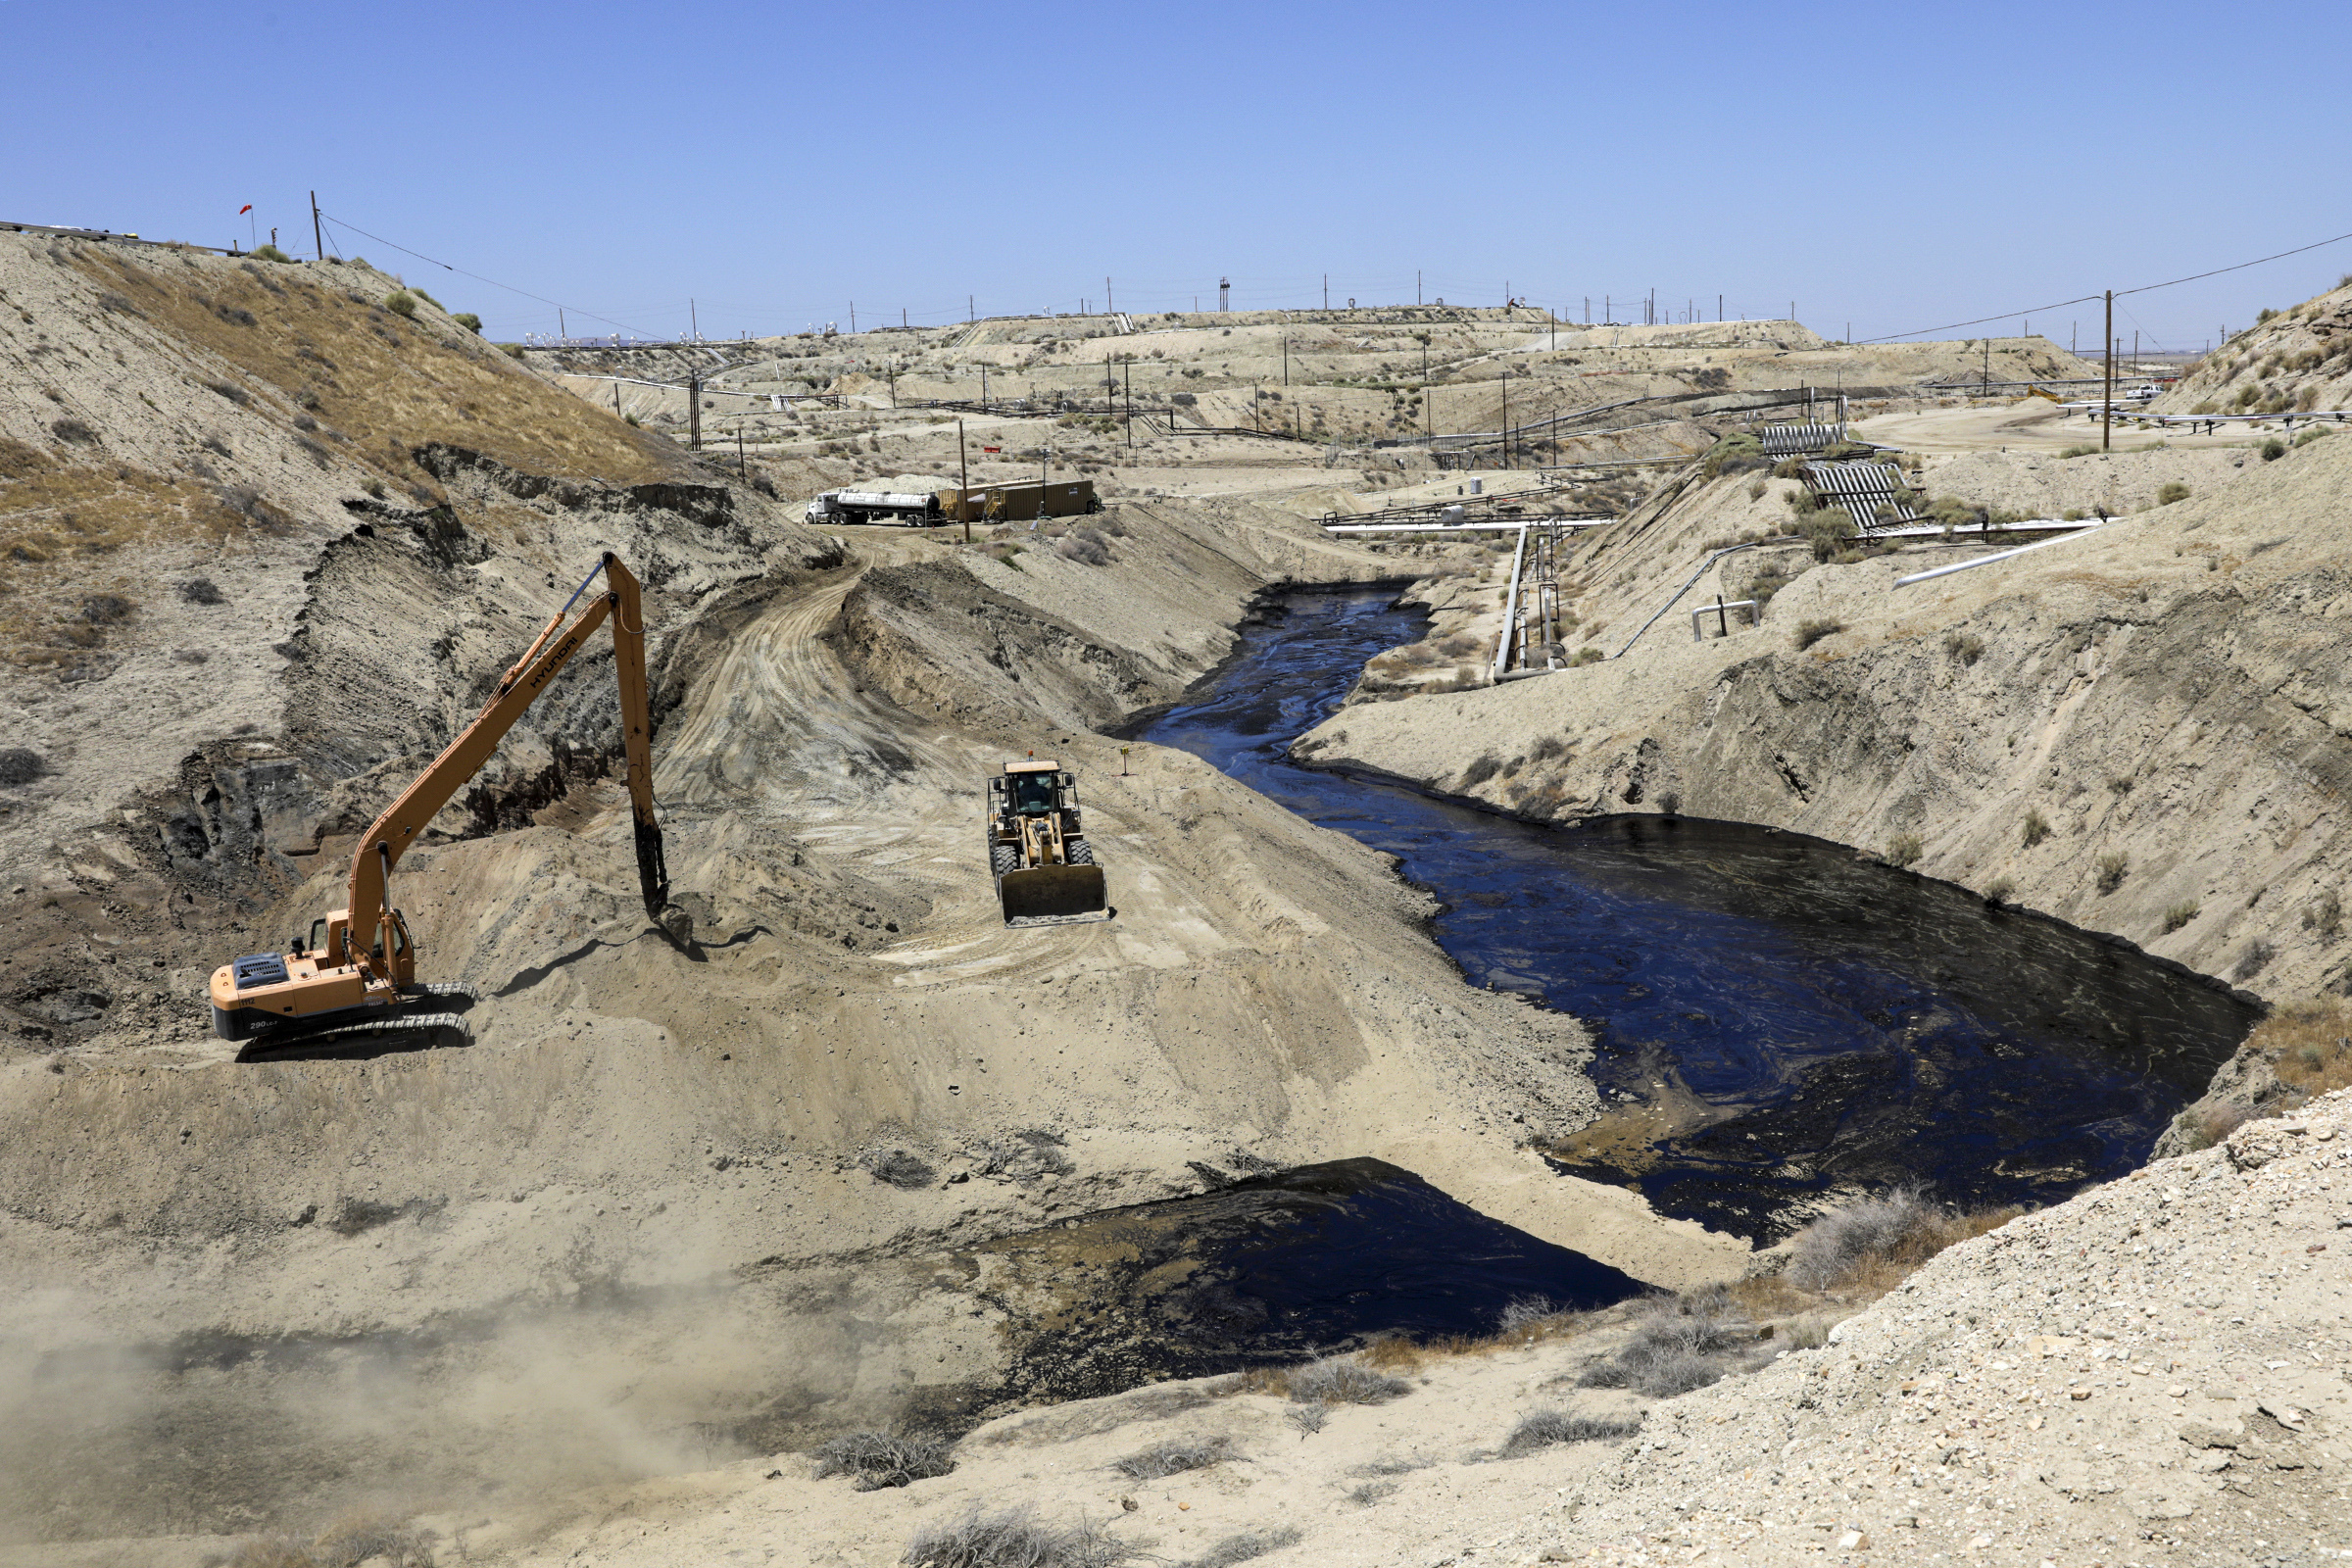 A crew works on seepage of 800,000 gallons of oil and brine water oil from an abandoned well in Chevron Corp's Cymric Oil Field in McKittrick, Calif., on July 24, 2019.